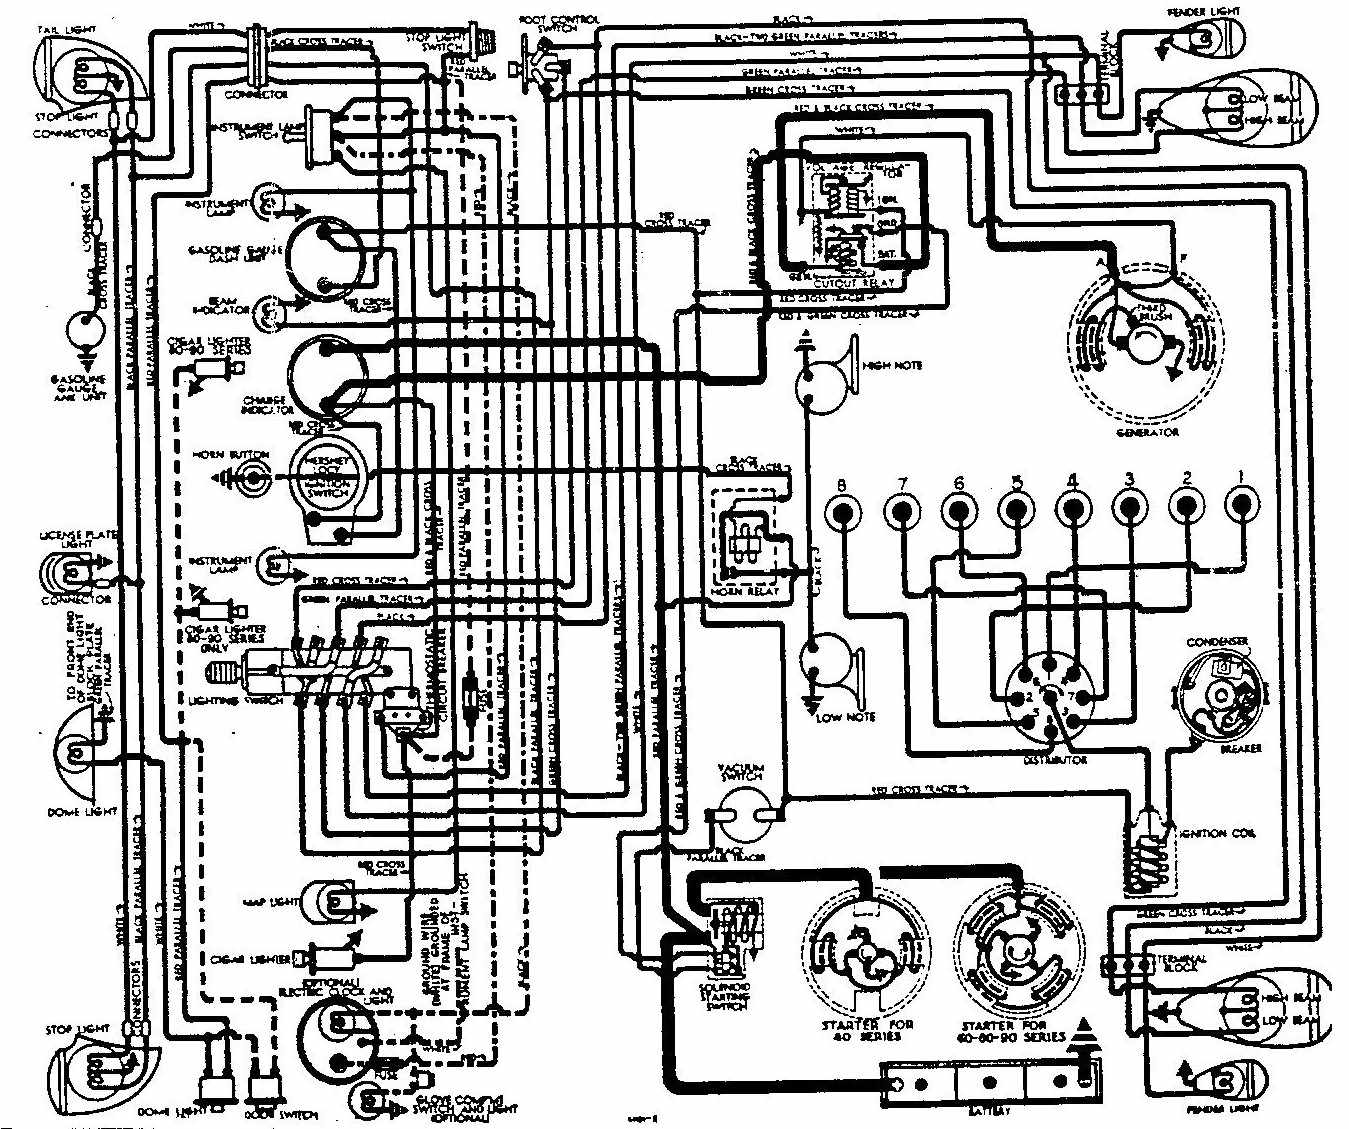 Cool new holland tractor wiring diagram pictures inspiration